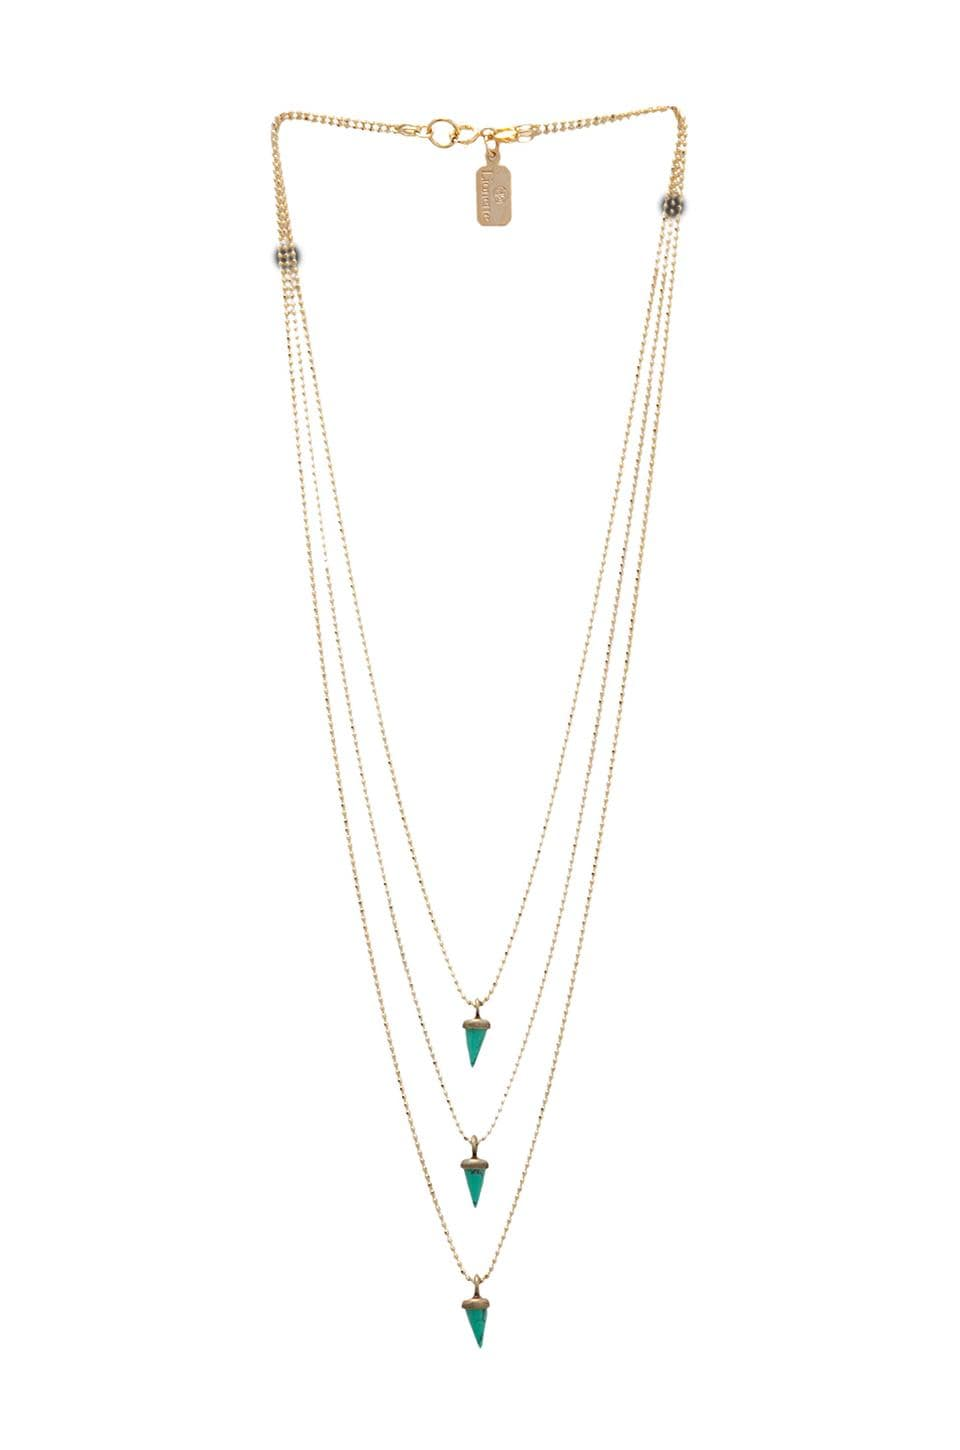 Lionette by Noa Sade Avish Necklace in Turquoise